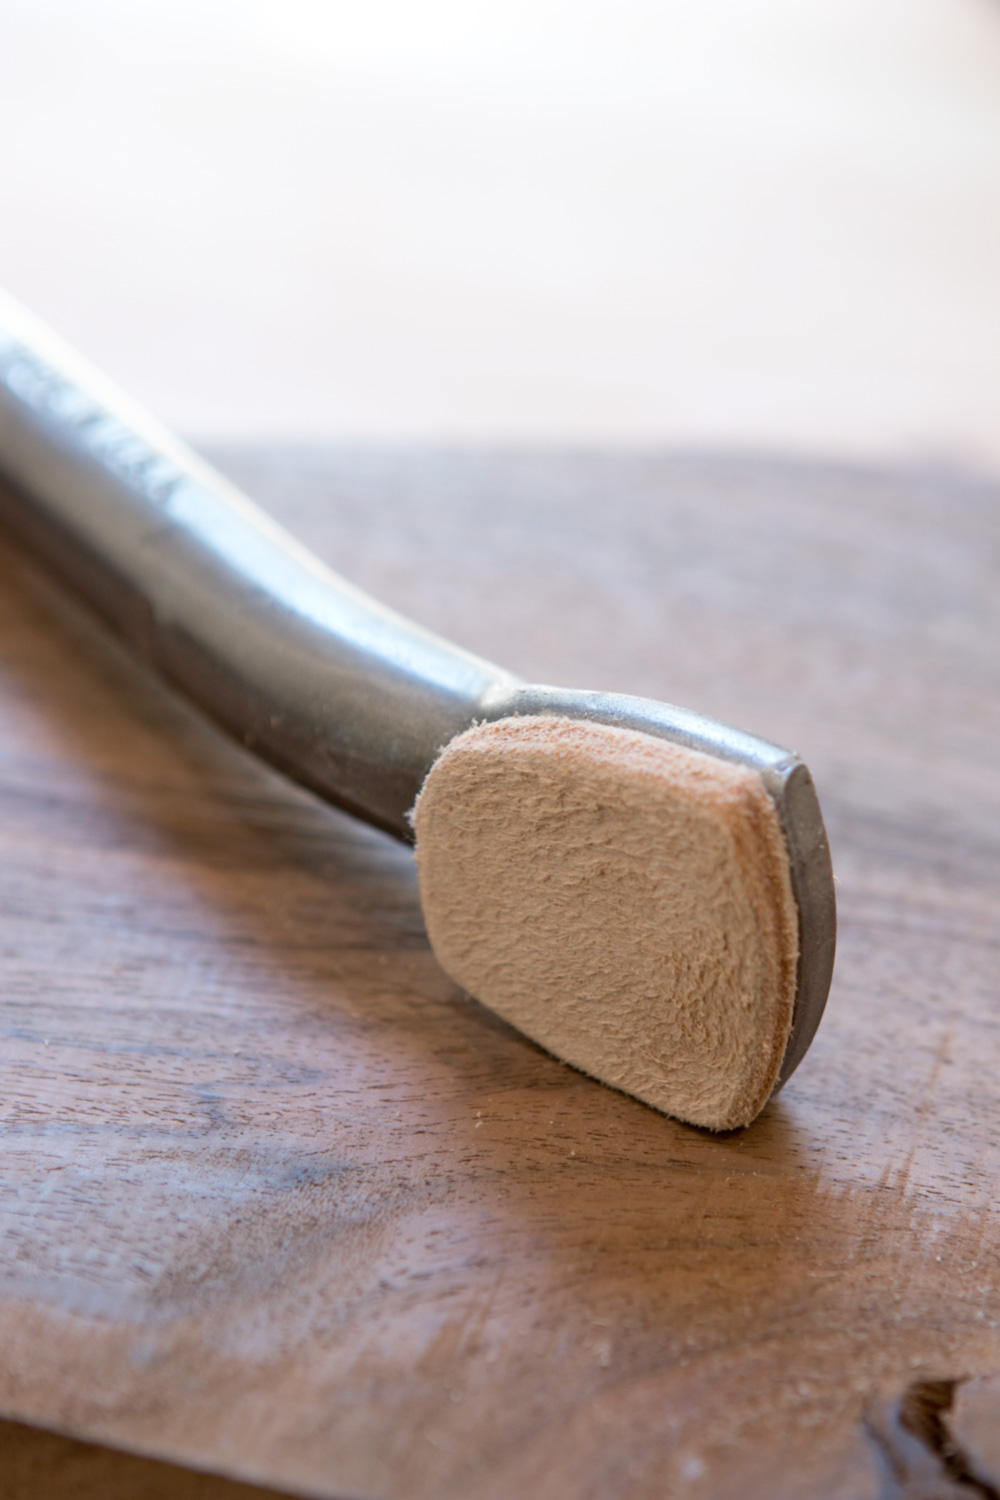 Stop Marring Your Wood: How to Make Leather Holdfast Pads for Woodworking | Man Made DIY ...